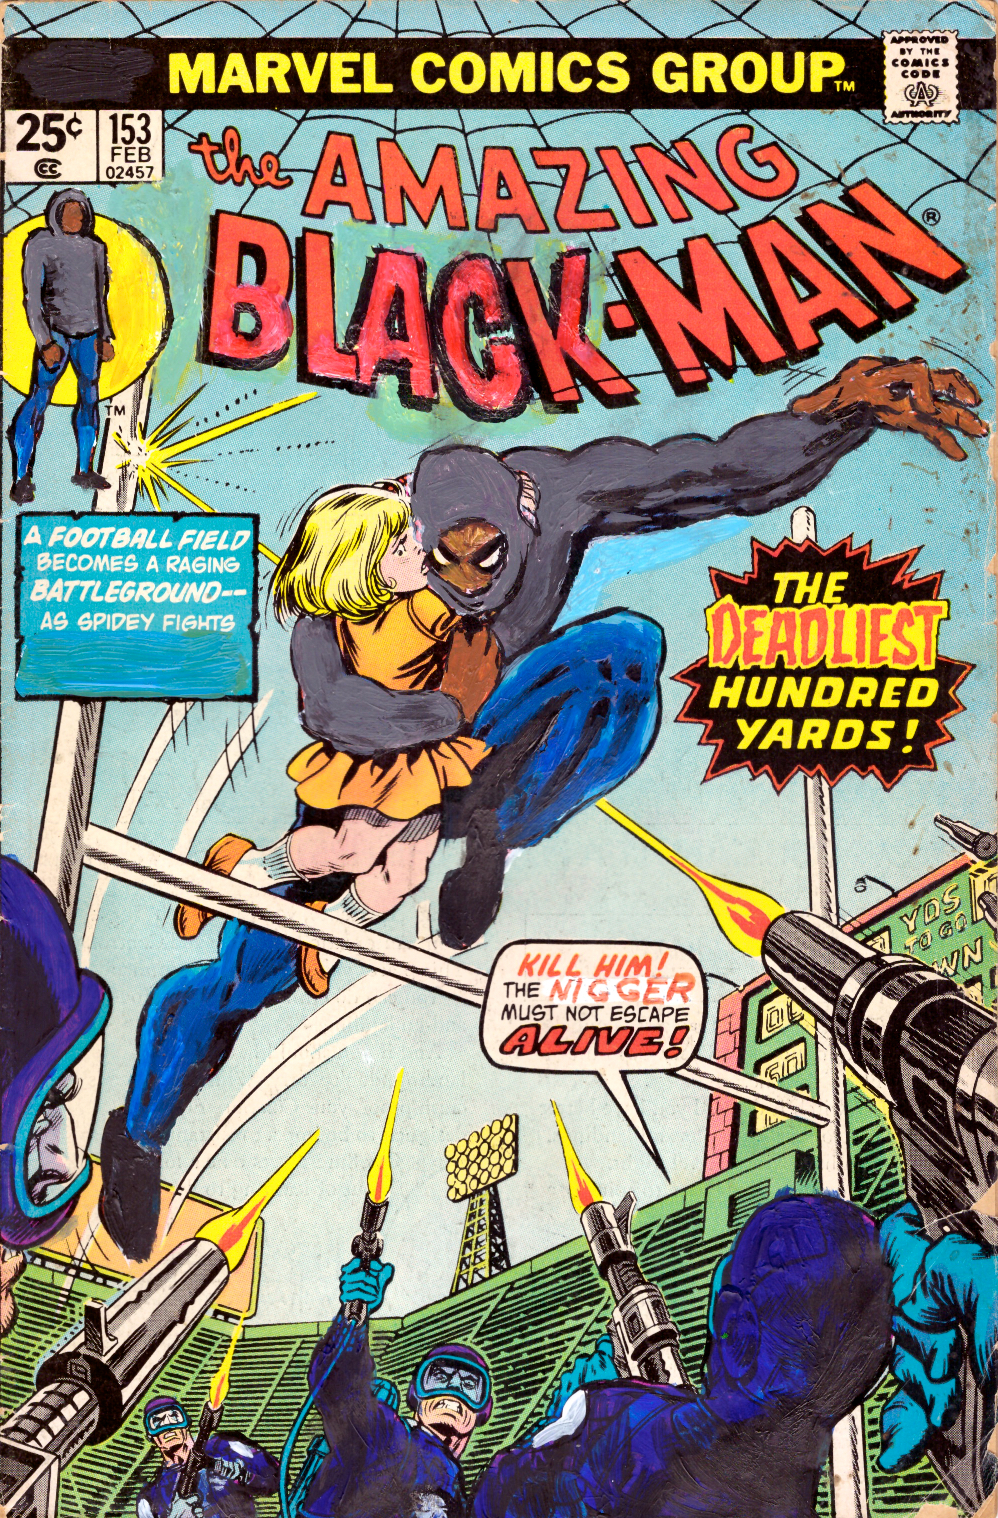 Kumasi J. Barnett  The Amazing Black-Man #153 The Deadliest Hundred Yards   2018 Acrylic, marker, pen and oil marker on comic book 9 3/4h x 6 1/4w inches KB-004